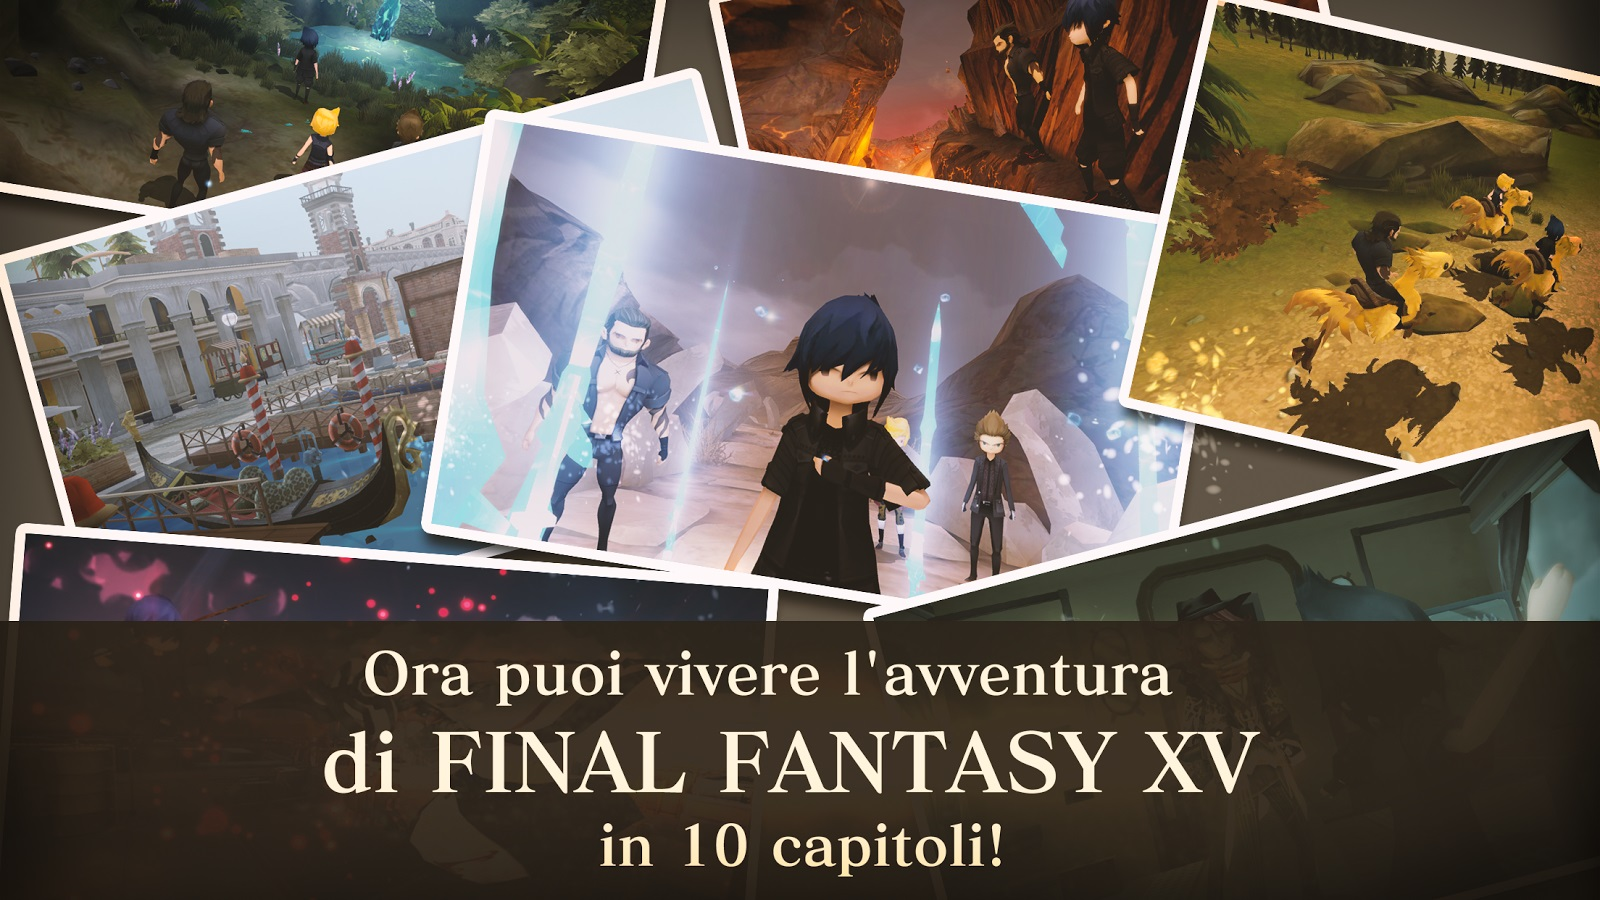 Final Fantasy XV Pocket Edition è disponibile!